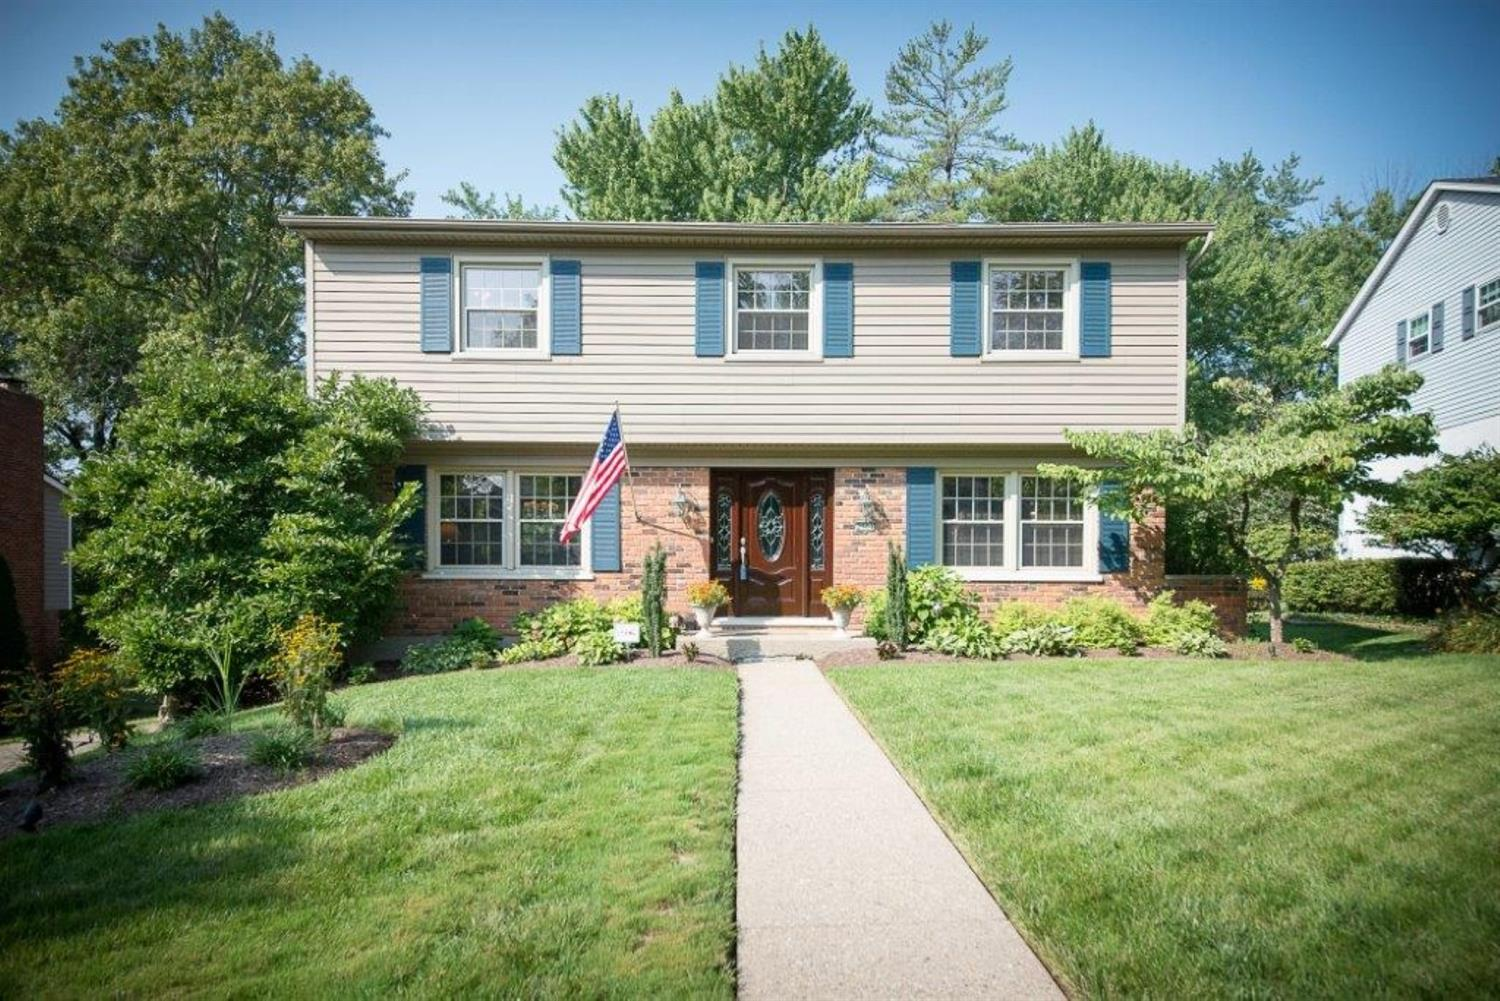 2501 Wingham Dr Green Twp. - Hamilton Co., OH